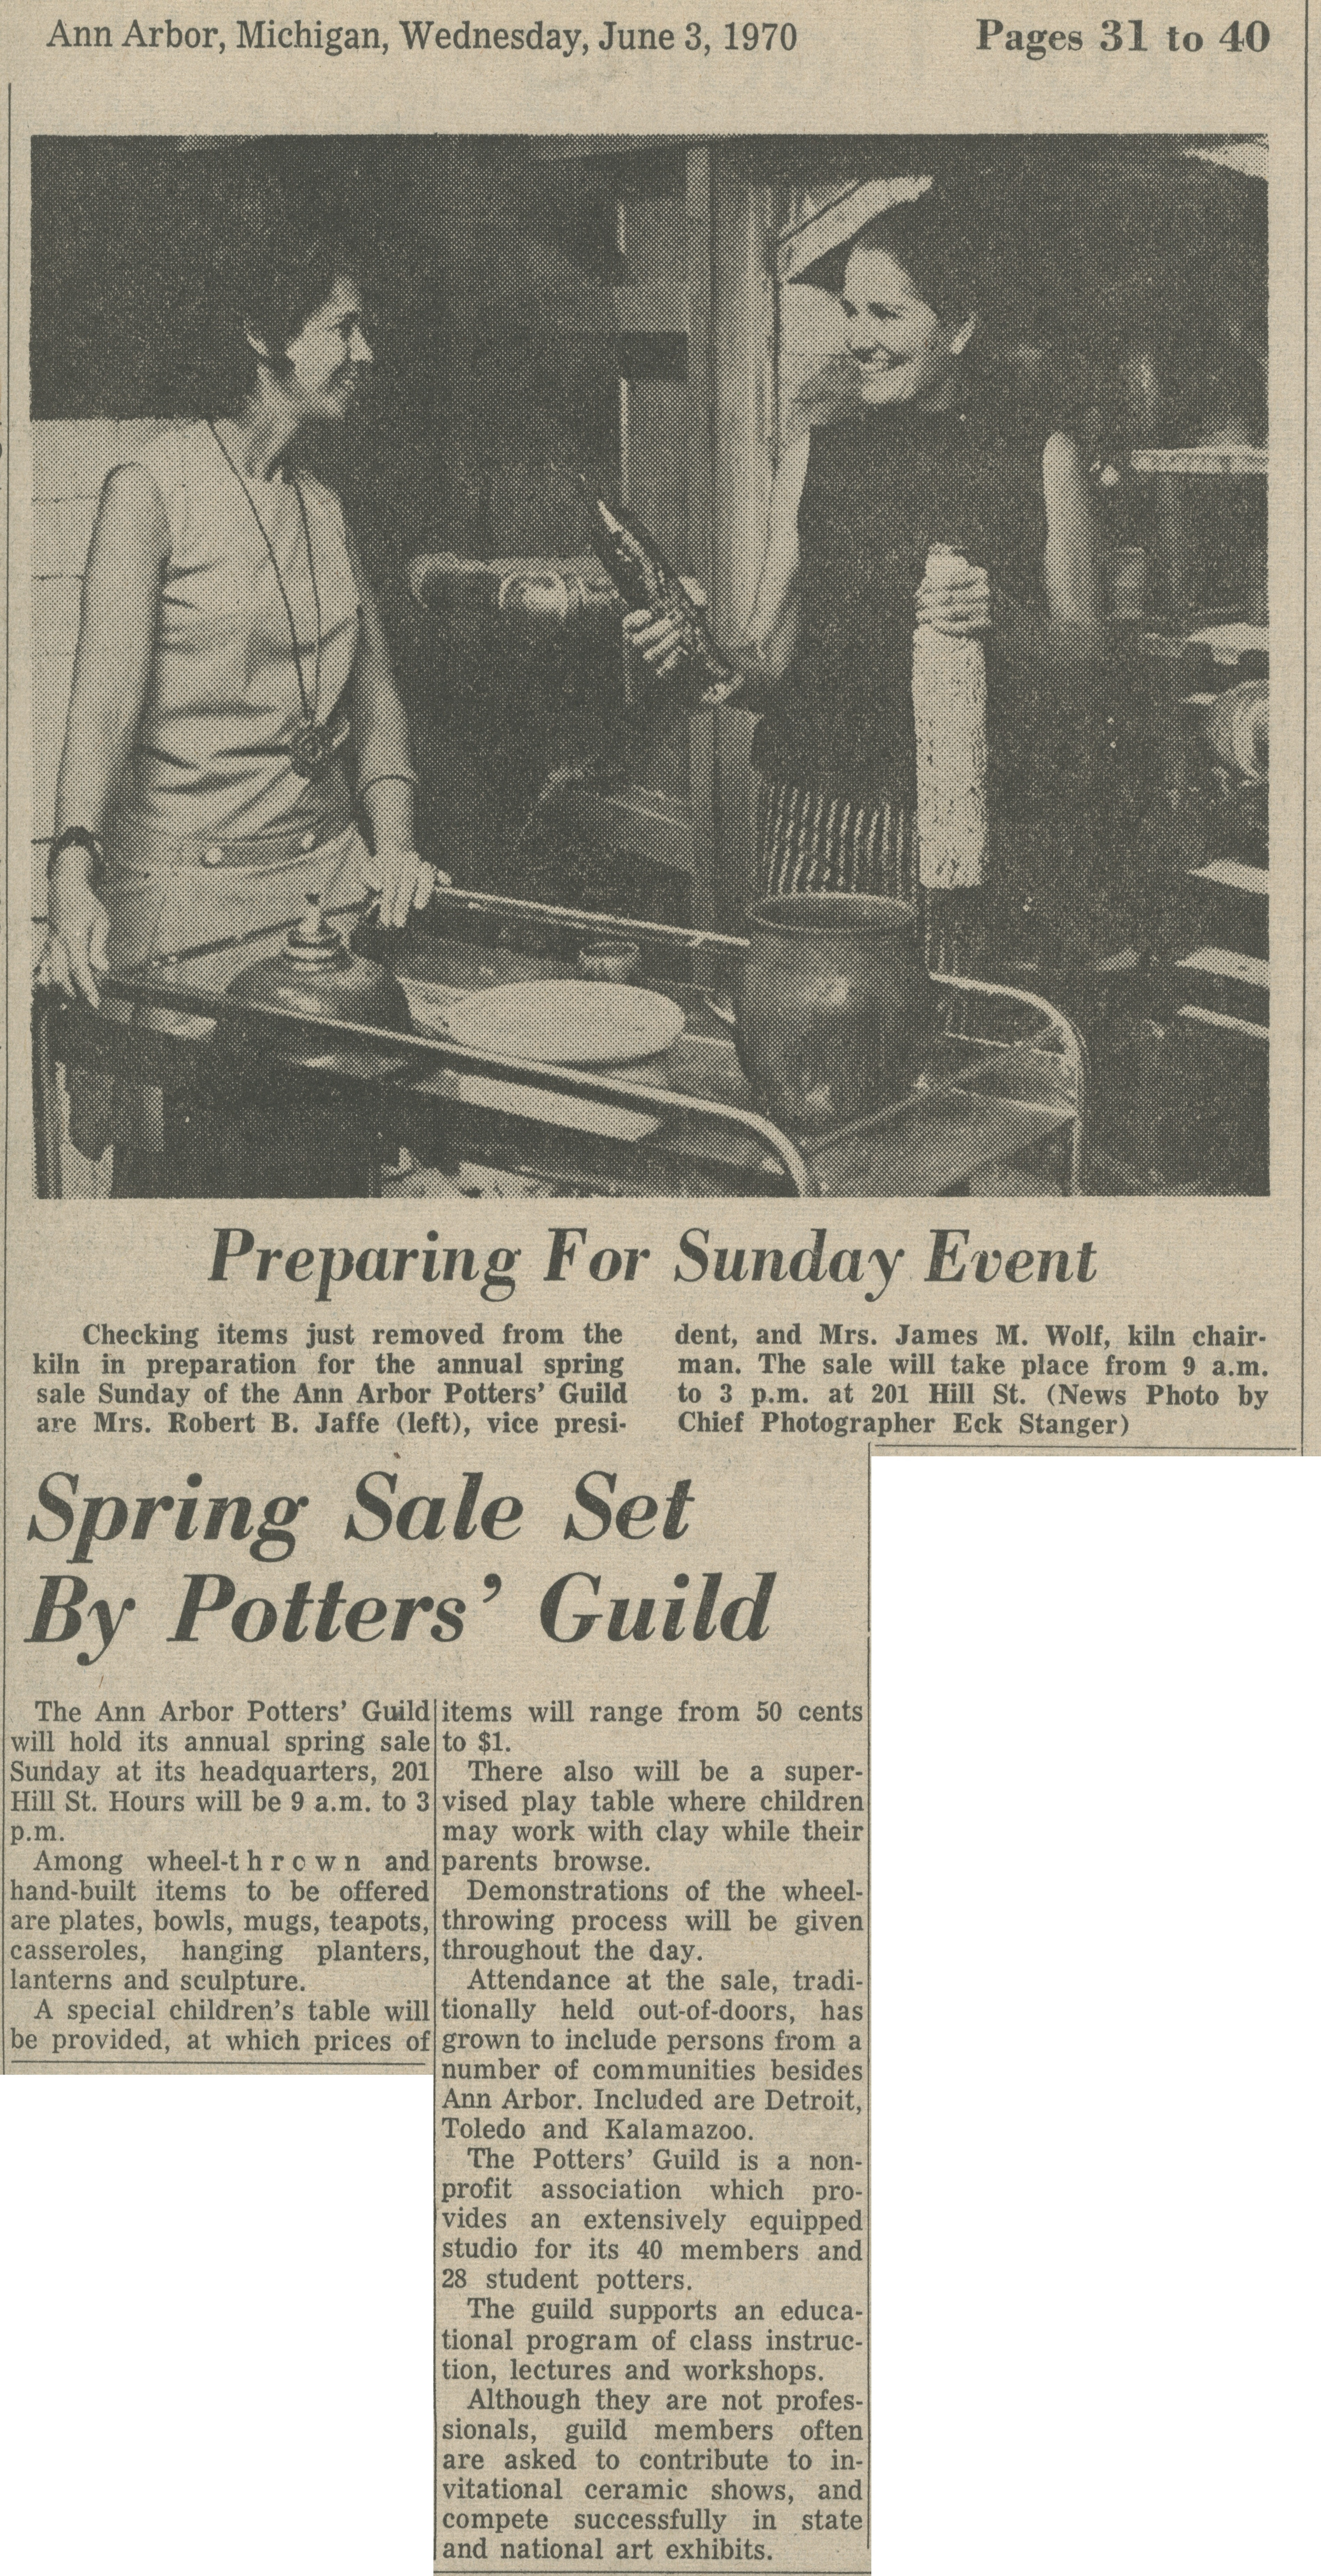 Spring Sale Set By Potters' Guild image